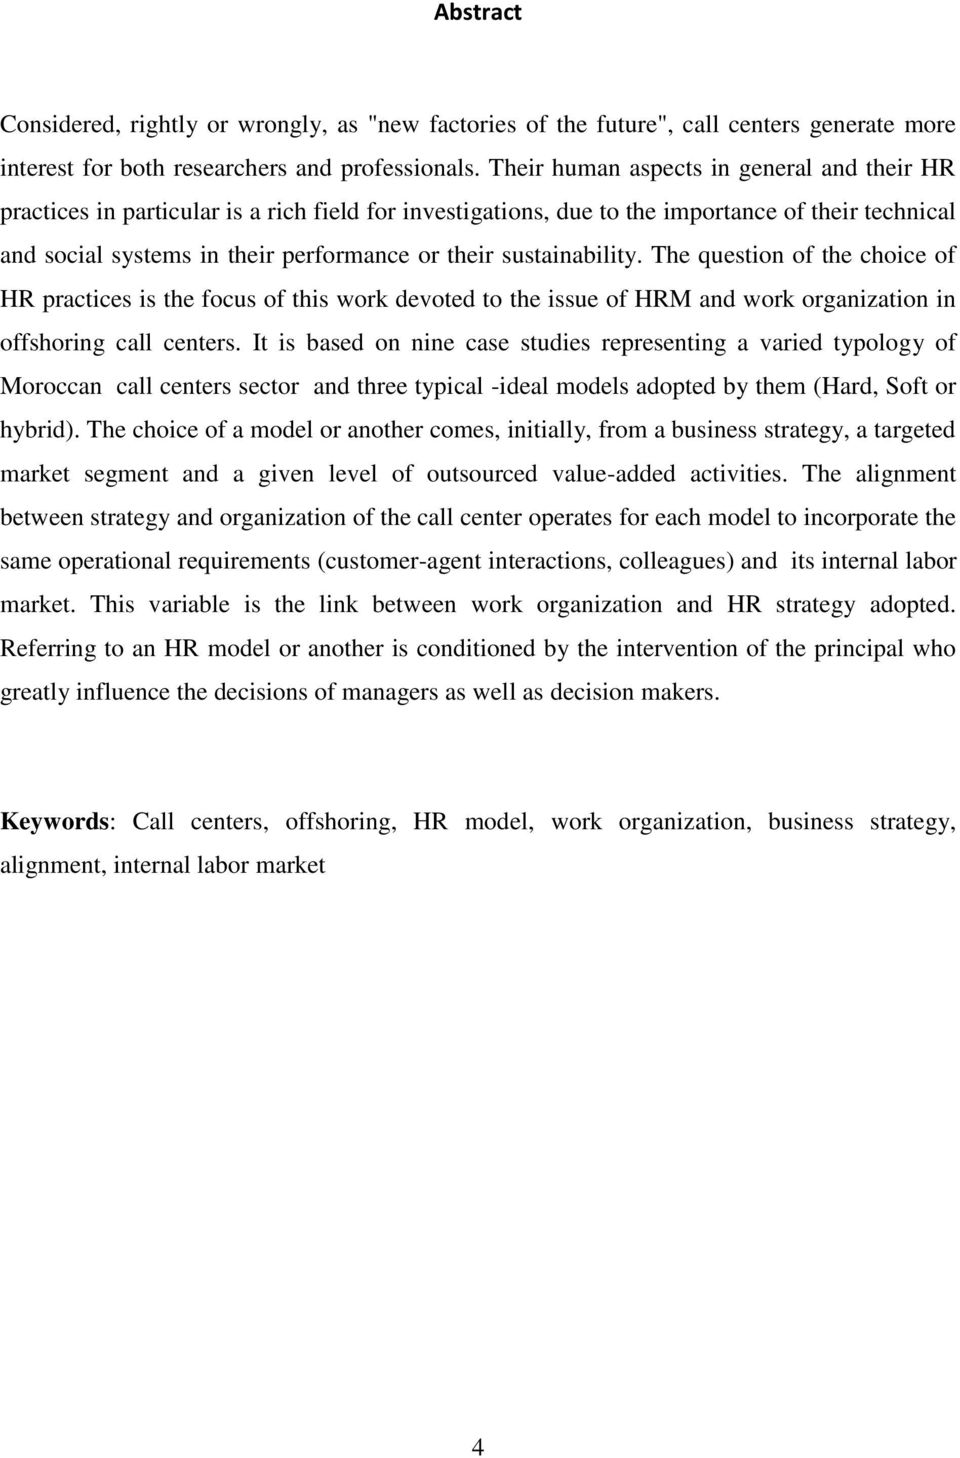 sustainability. The question of the choice of HR practices is the focus of this work devoted to the issue of HRM and work organization in offshoring call centers.